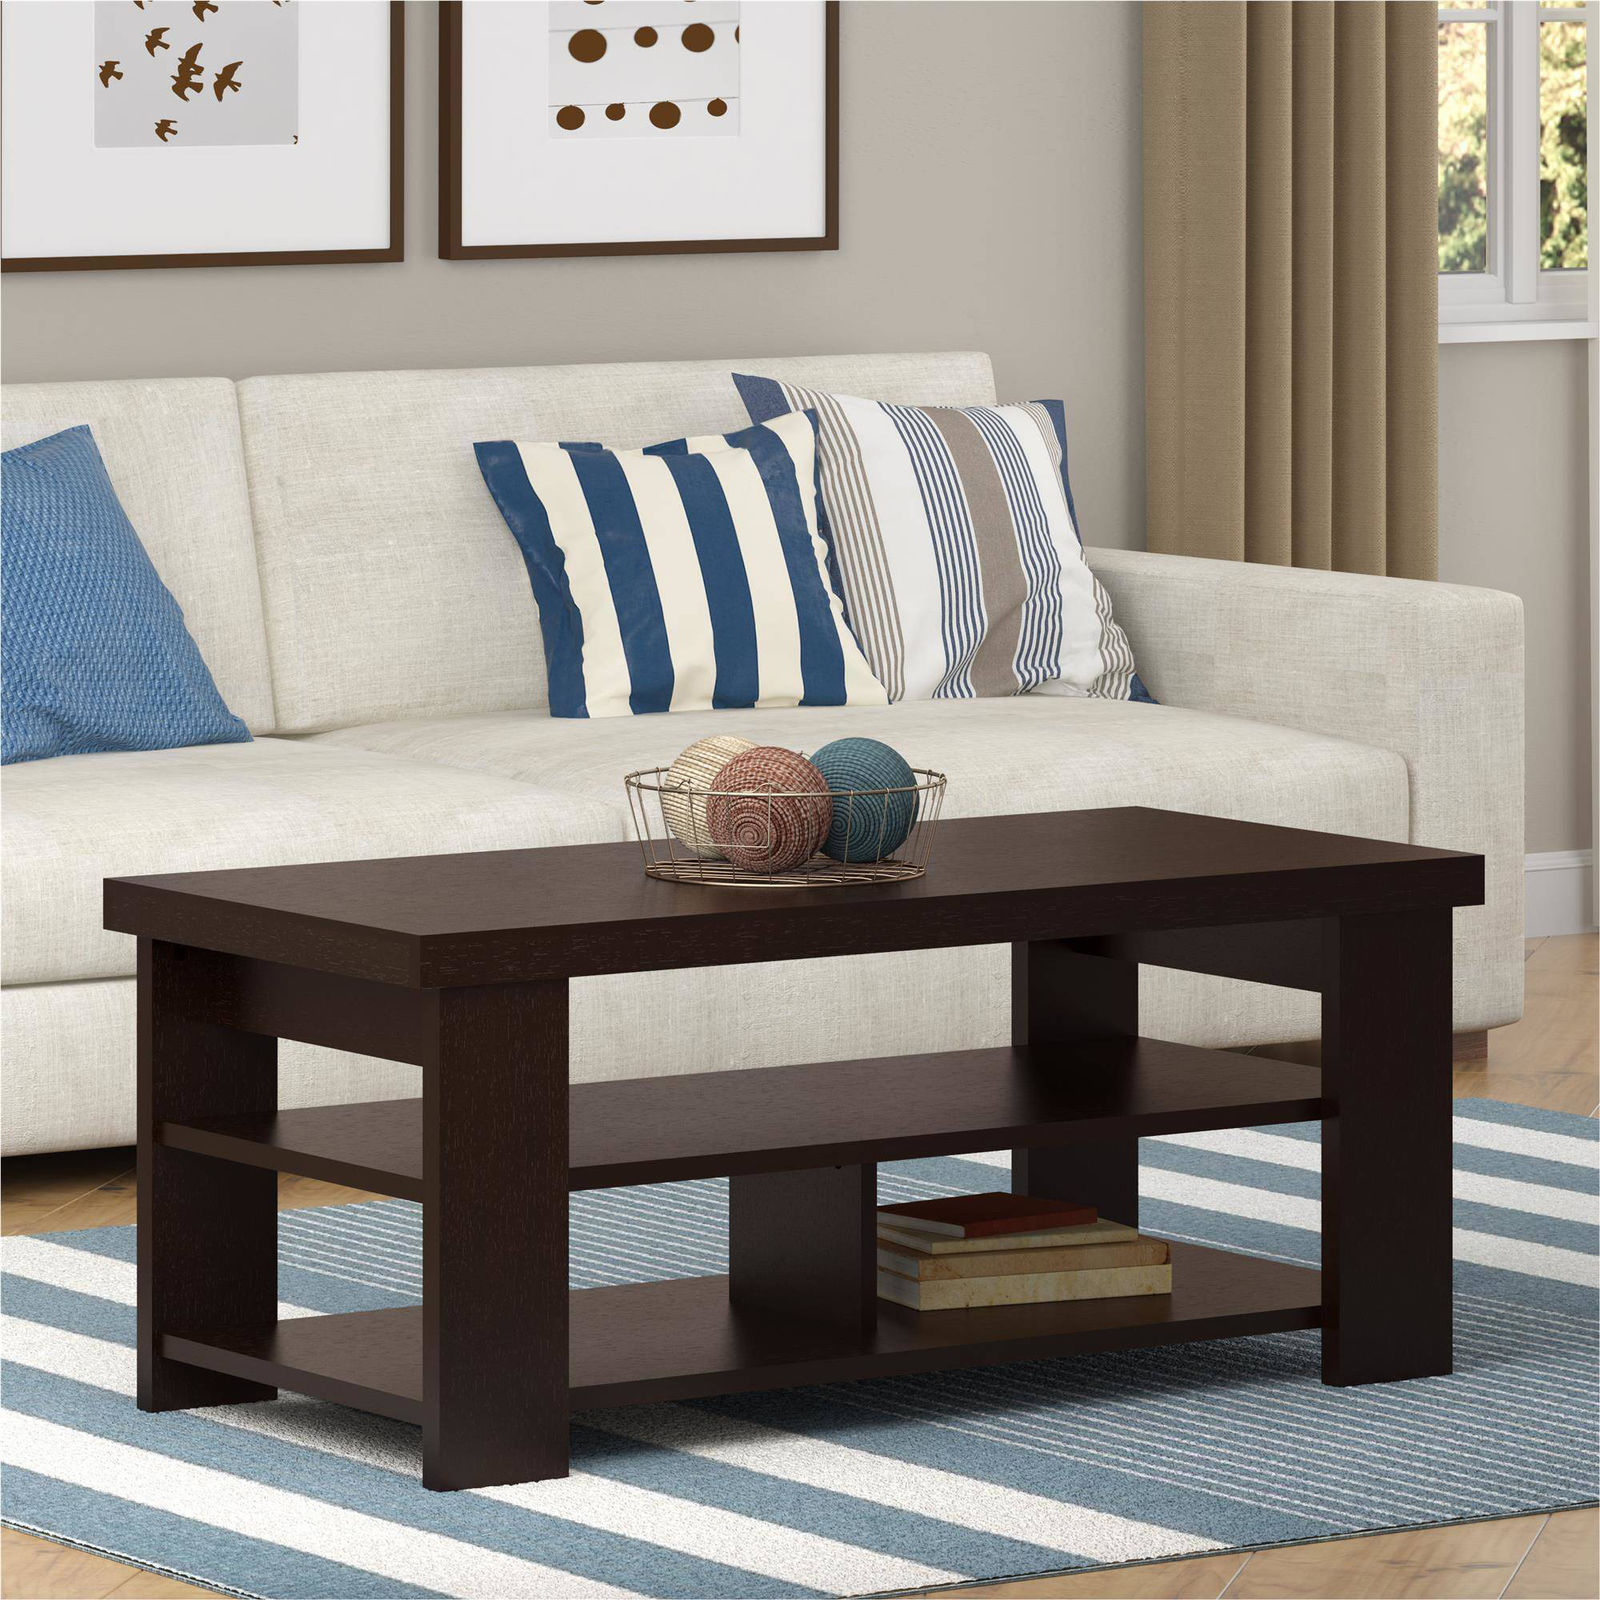 larkin coffee table ameriwood espresso black forrest end tables console furniture toronto dining position antique tier wood box frame glass large square target white bookcase